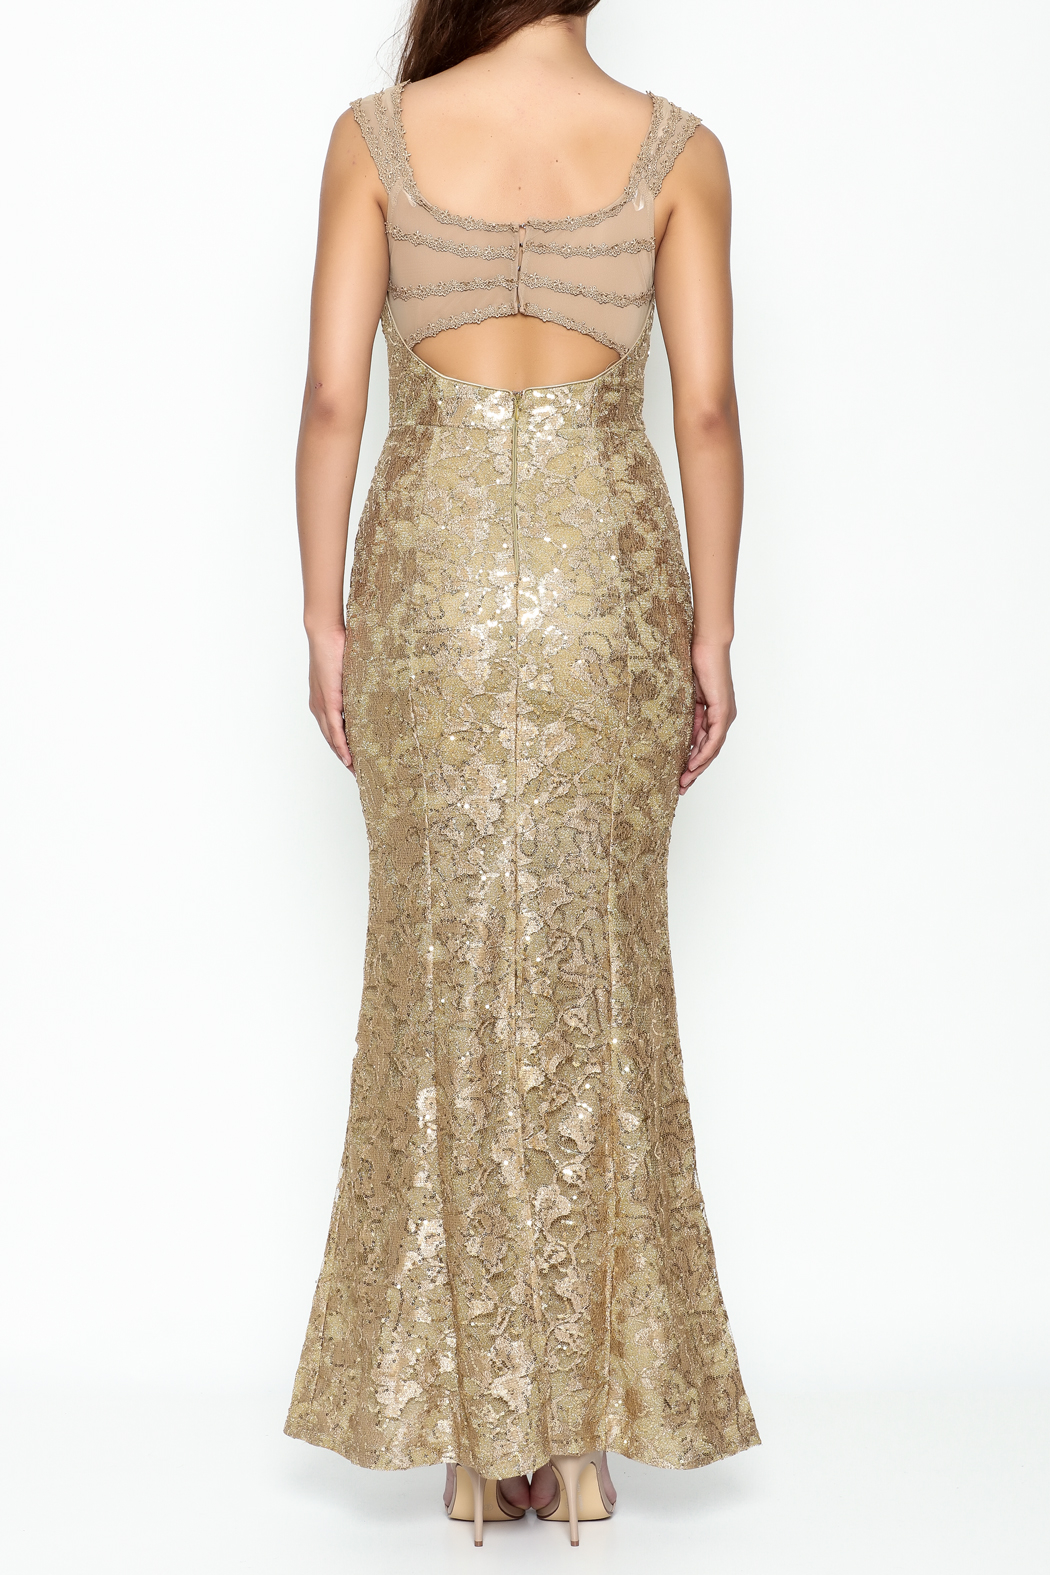 Nikibiki Gold Lace Dress - Back Cropped Image